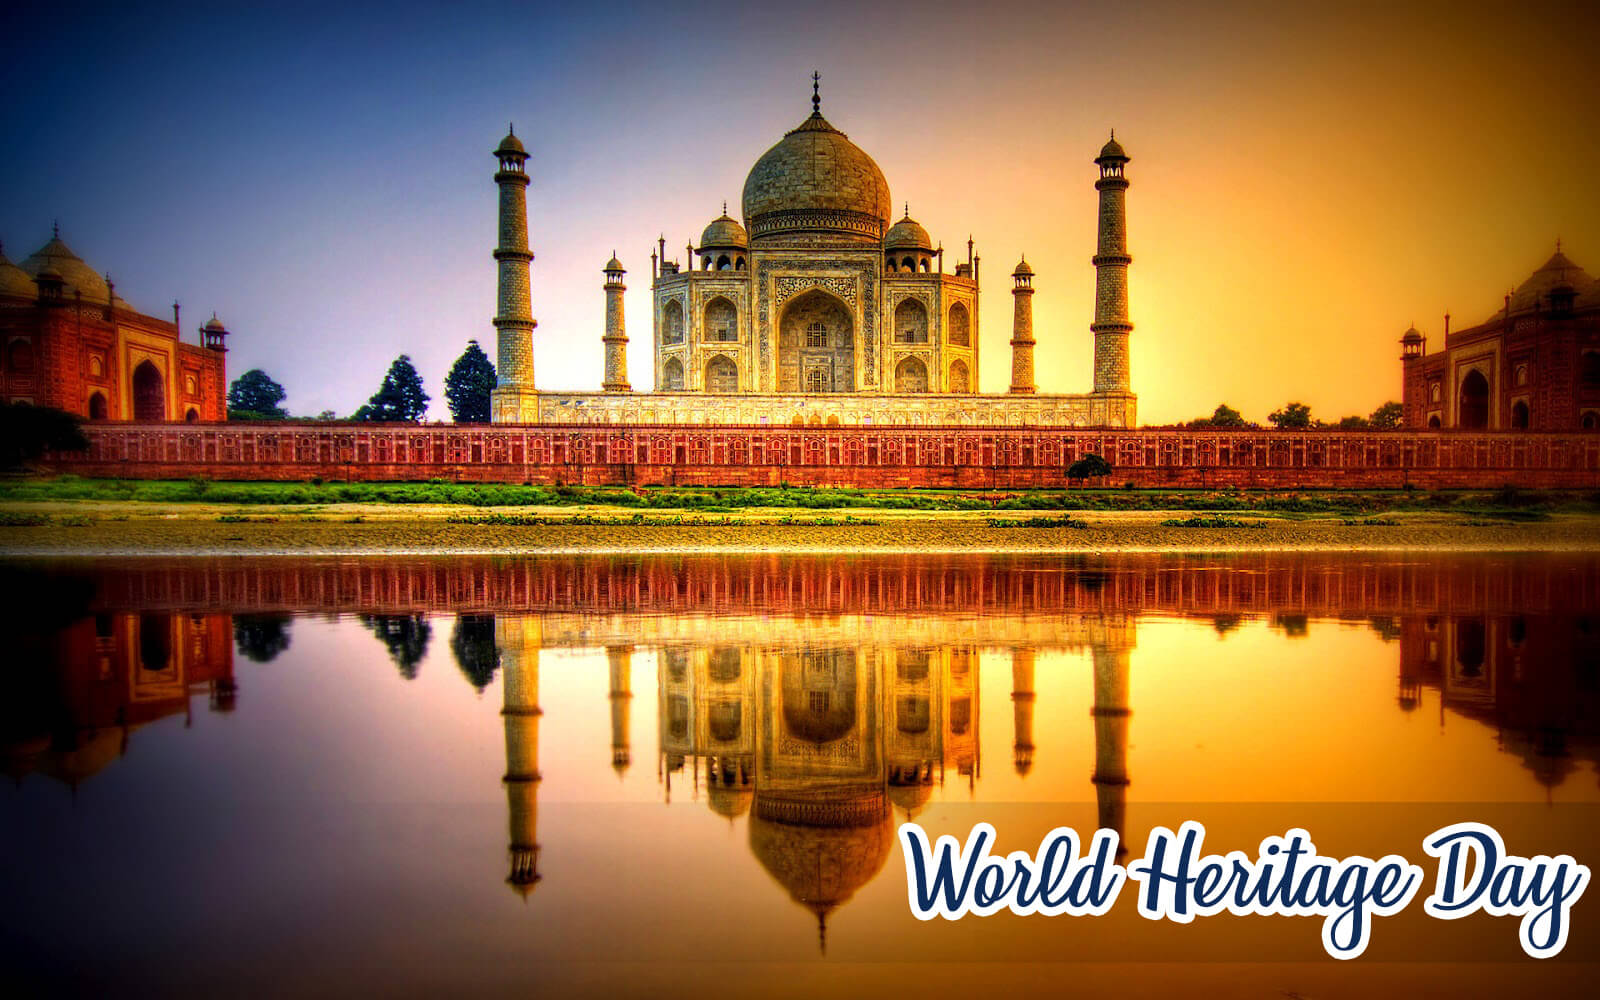 world heritage day monuments tajmahal wallpaper